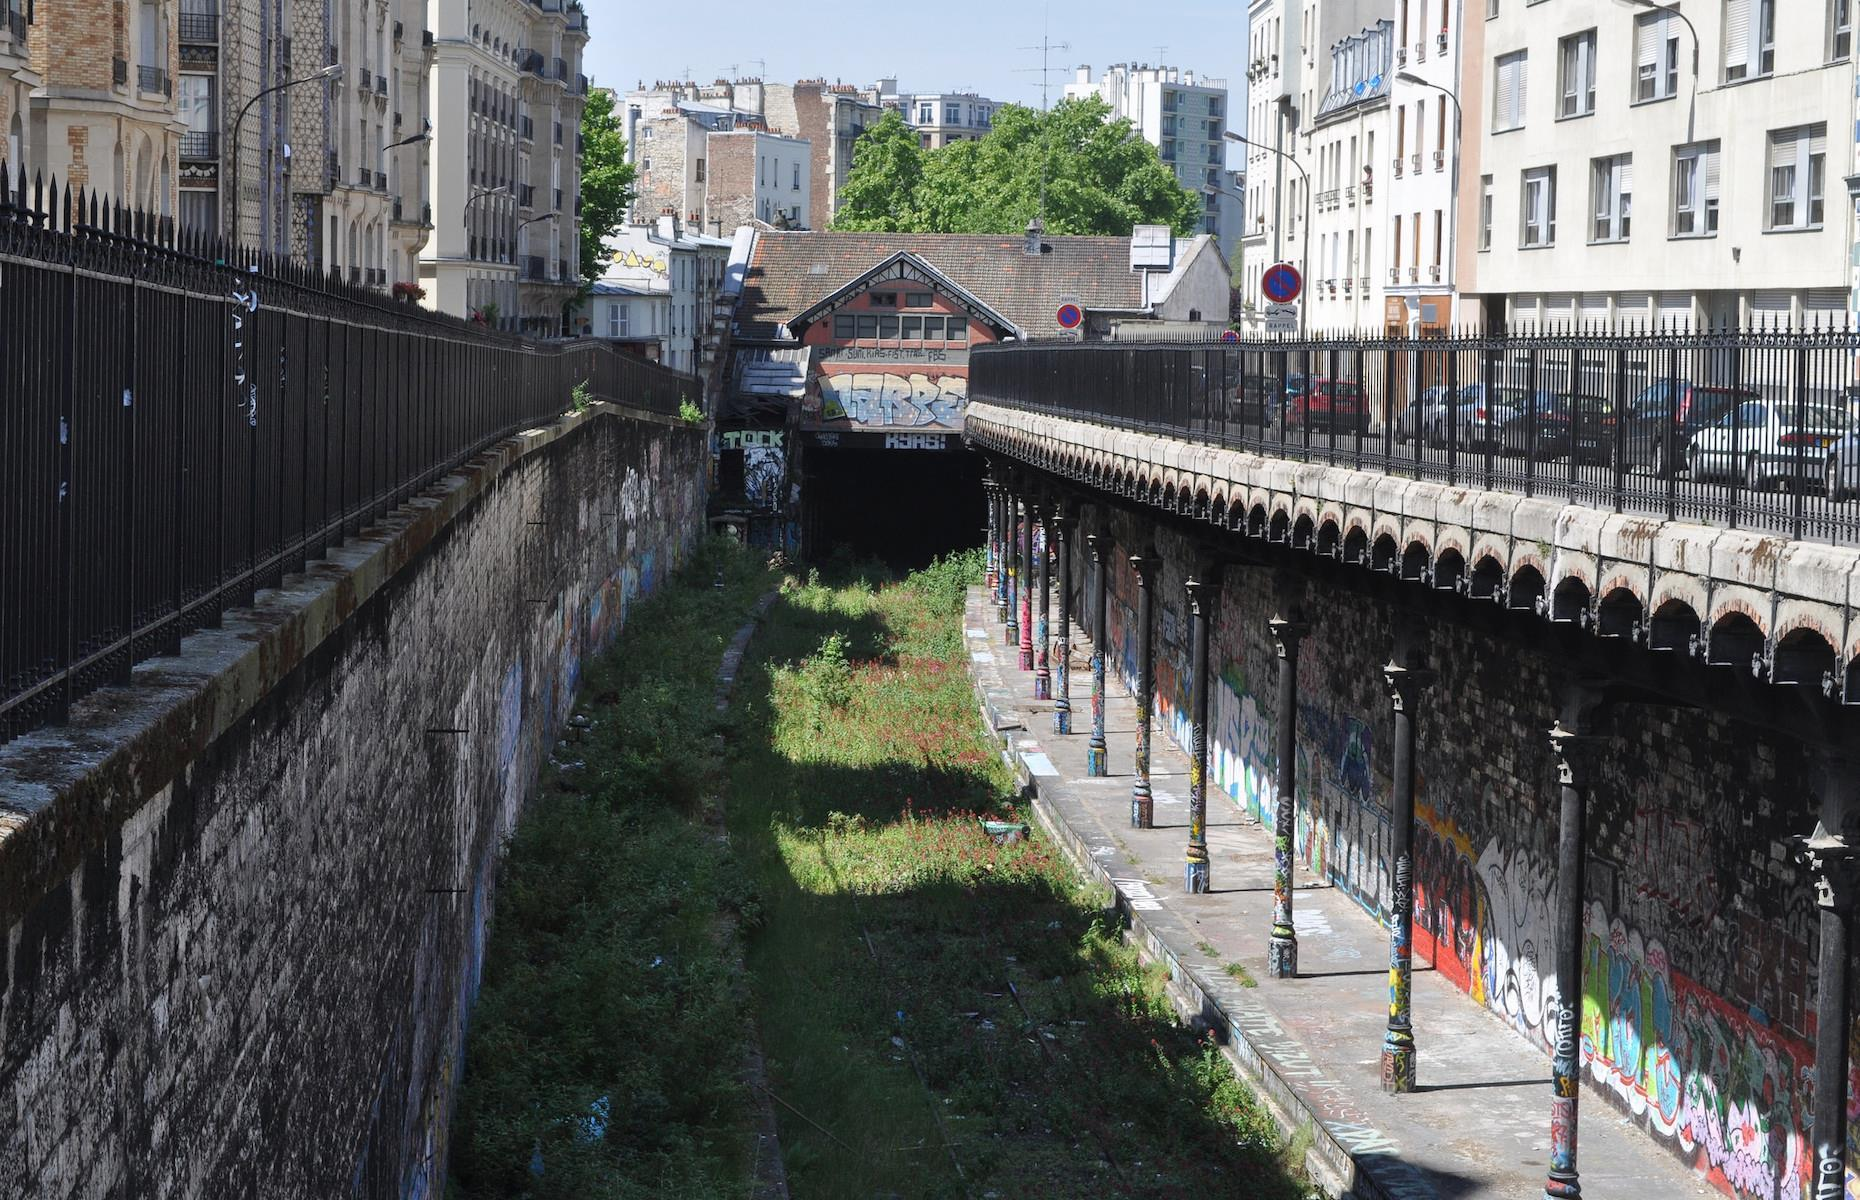 Slide 14 of 33: The once bustling railway line, which also served steam freight trains, originally had 29 stations, but today there are only 17. It was forced into decline by the advent of the underground Paris Métro and the growing popularity of motor vehicles.